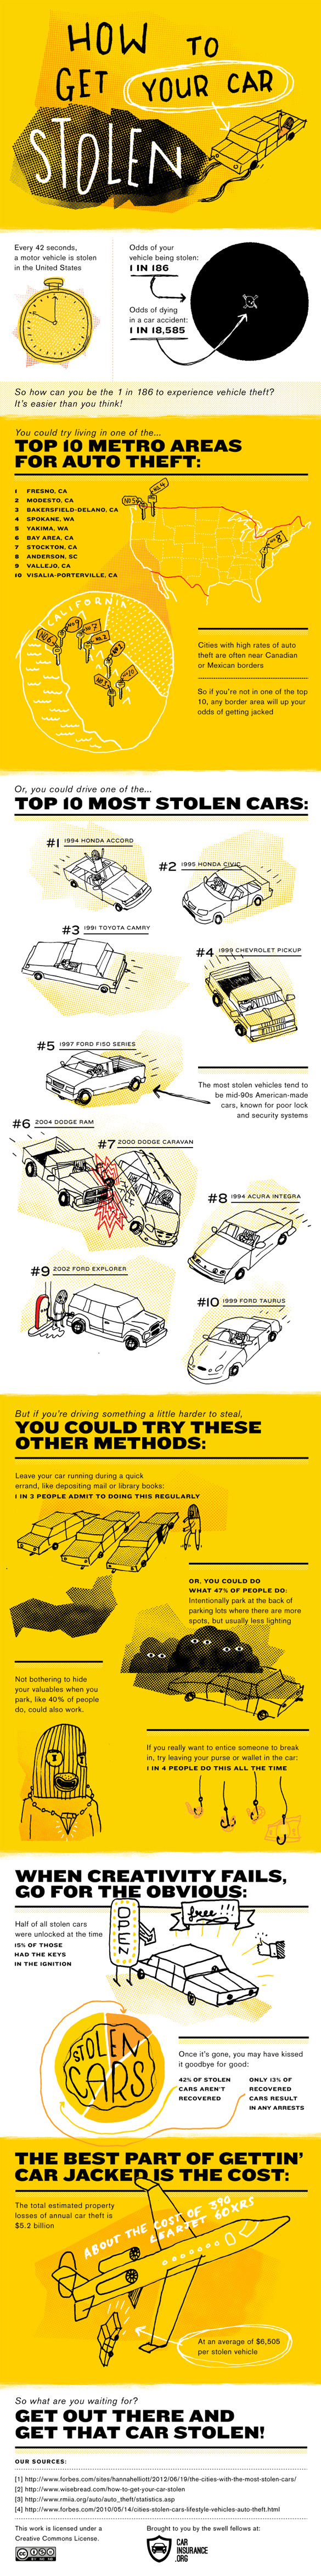 Prevent Car Theft with 4 Easy Steps Photo credit: CarInsurance.org